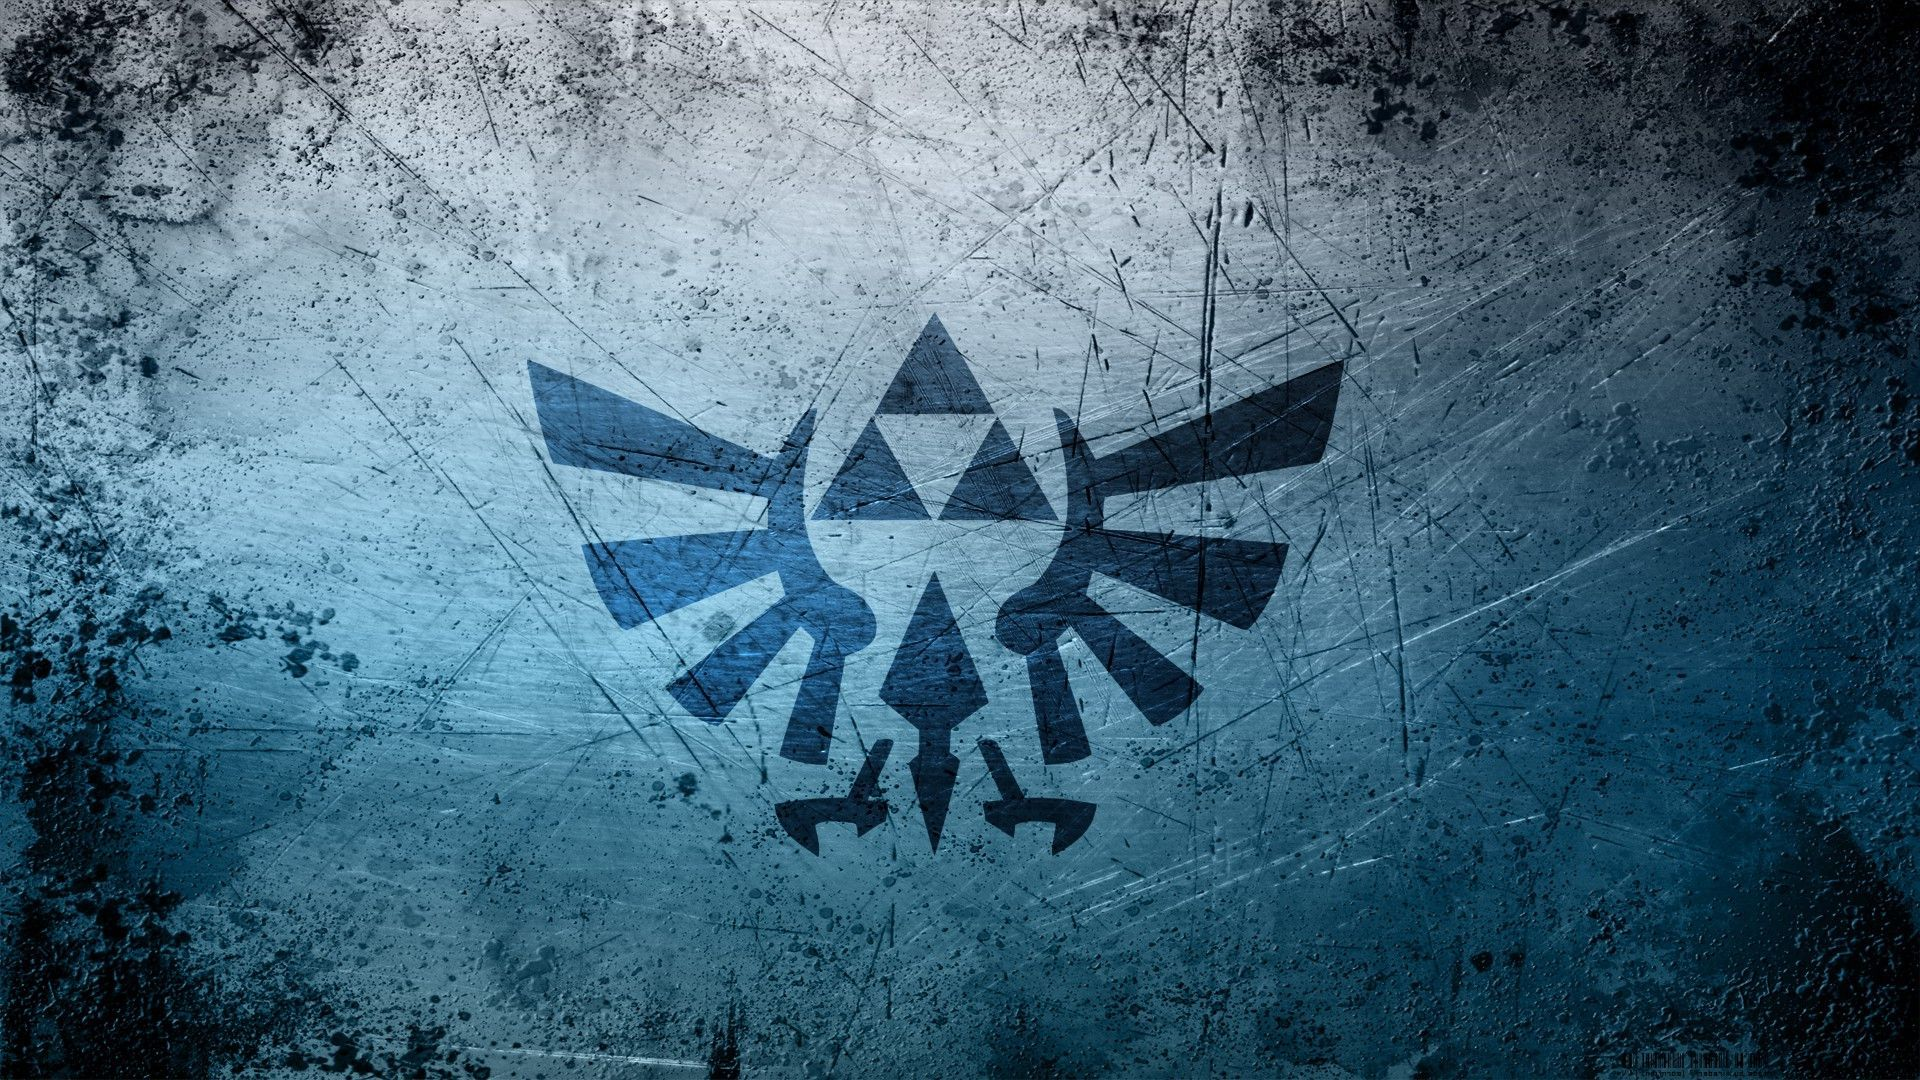 Legend of Zelda Wallpapers HD for desktop